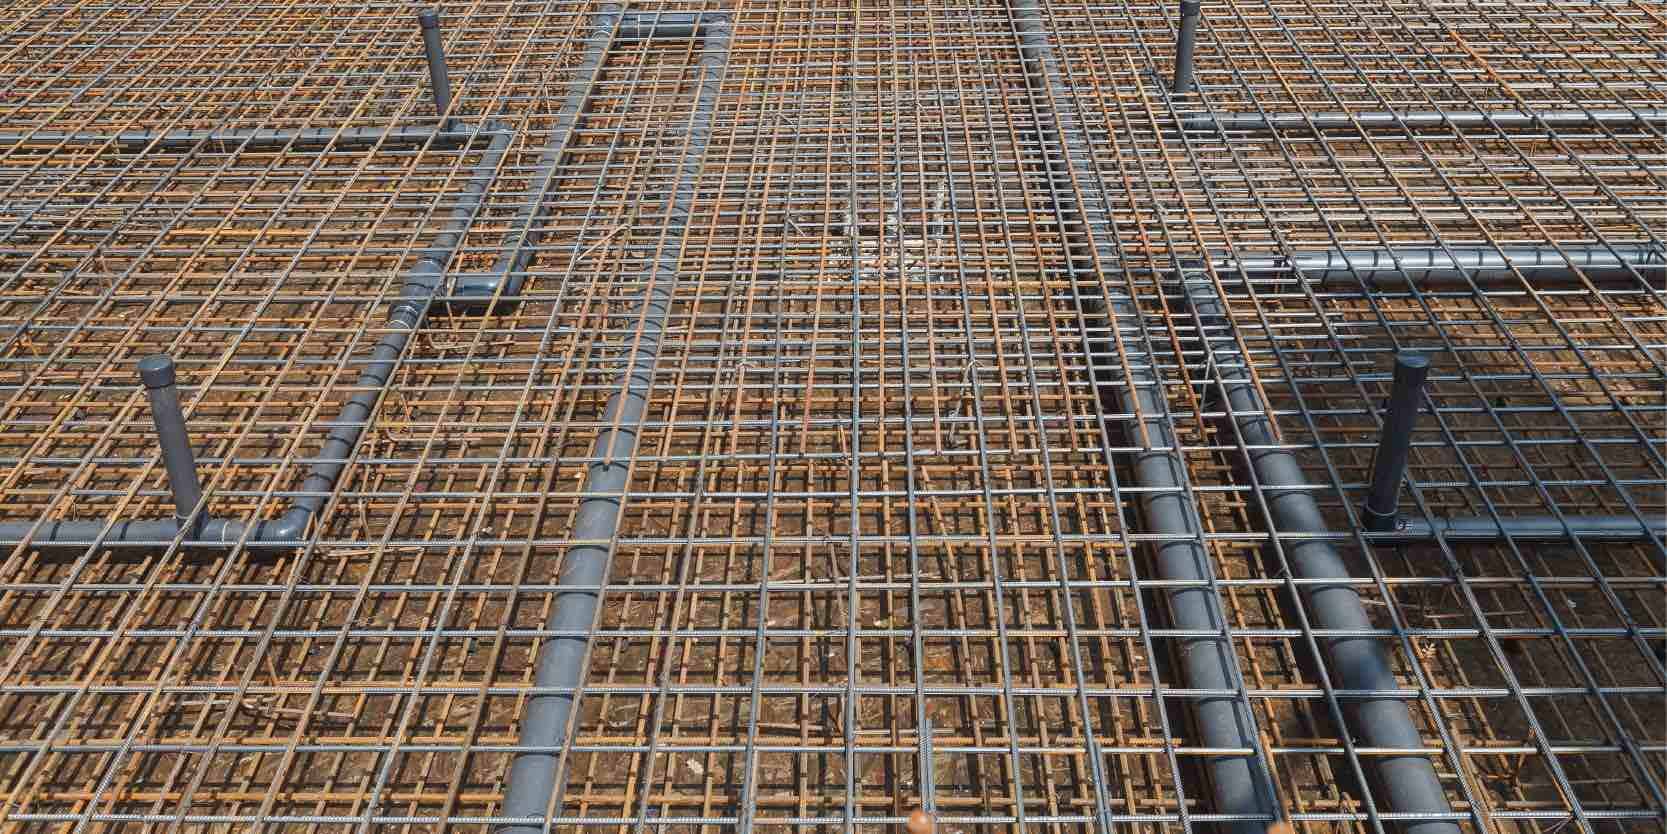 Placement of the wire mesh | Concrete slab